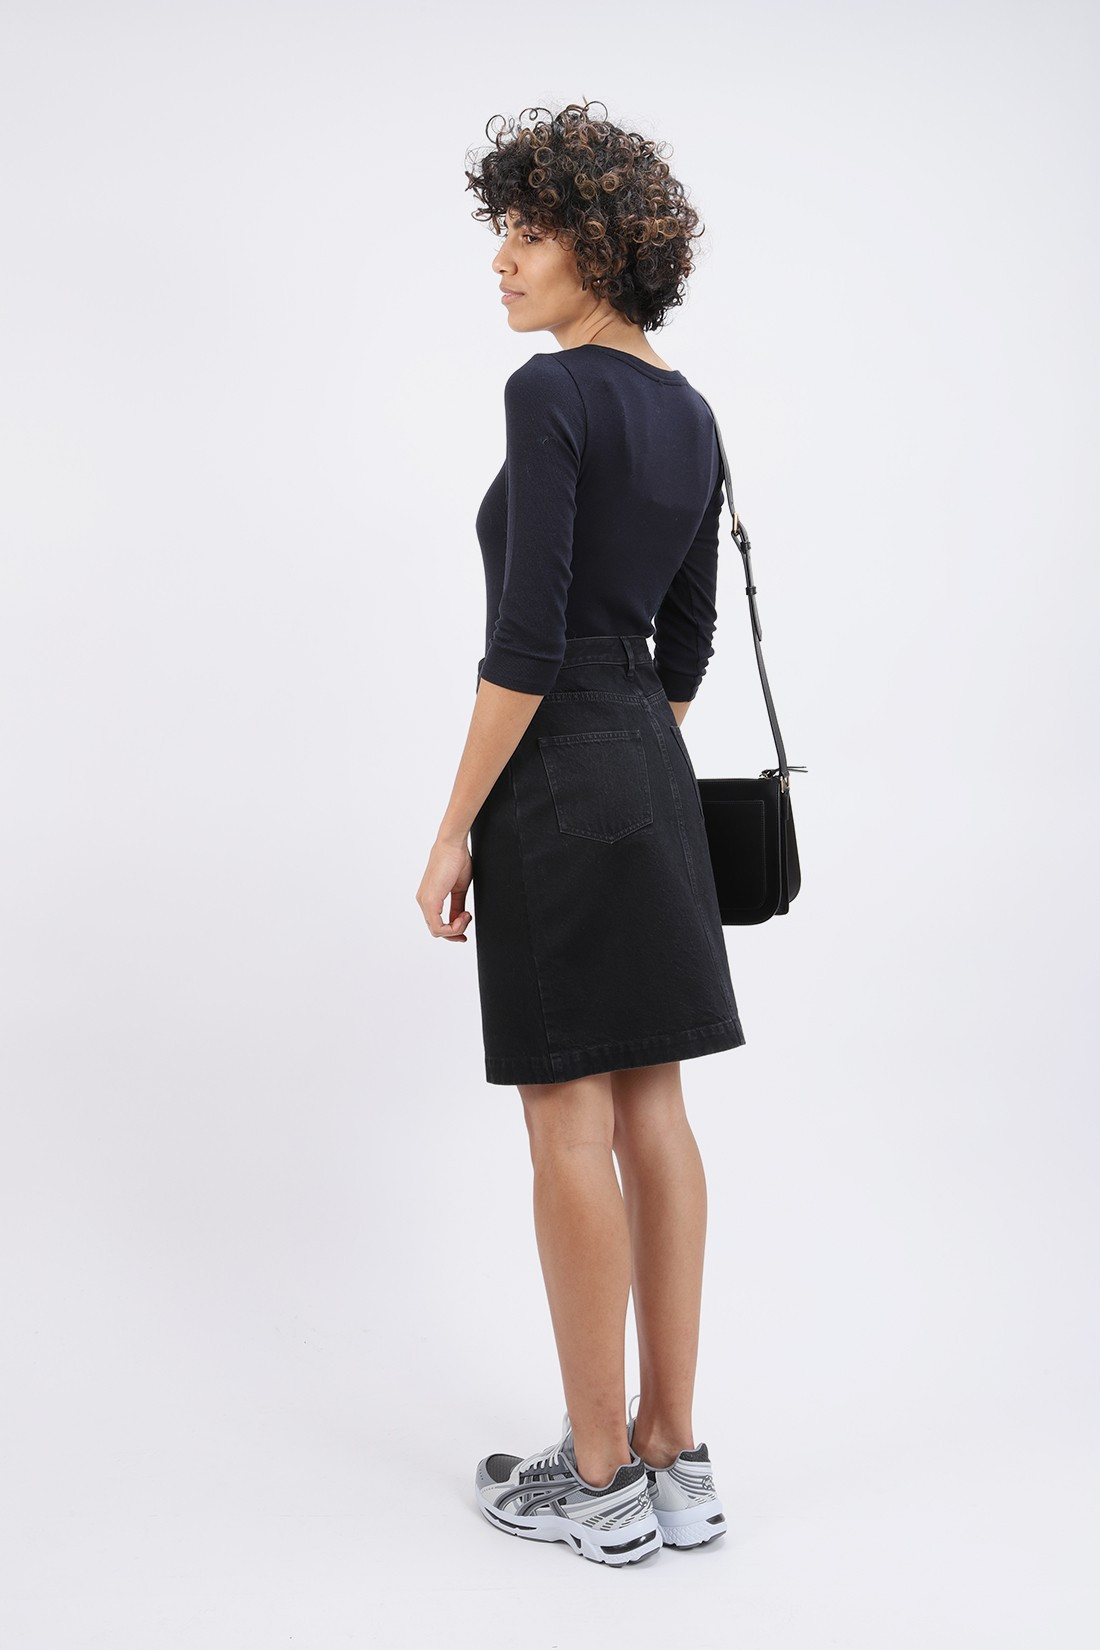 A.P.C. FOR WOMAN / Jupe therese Faux noir